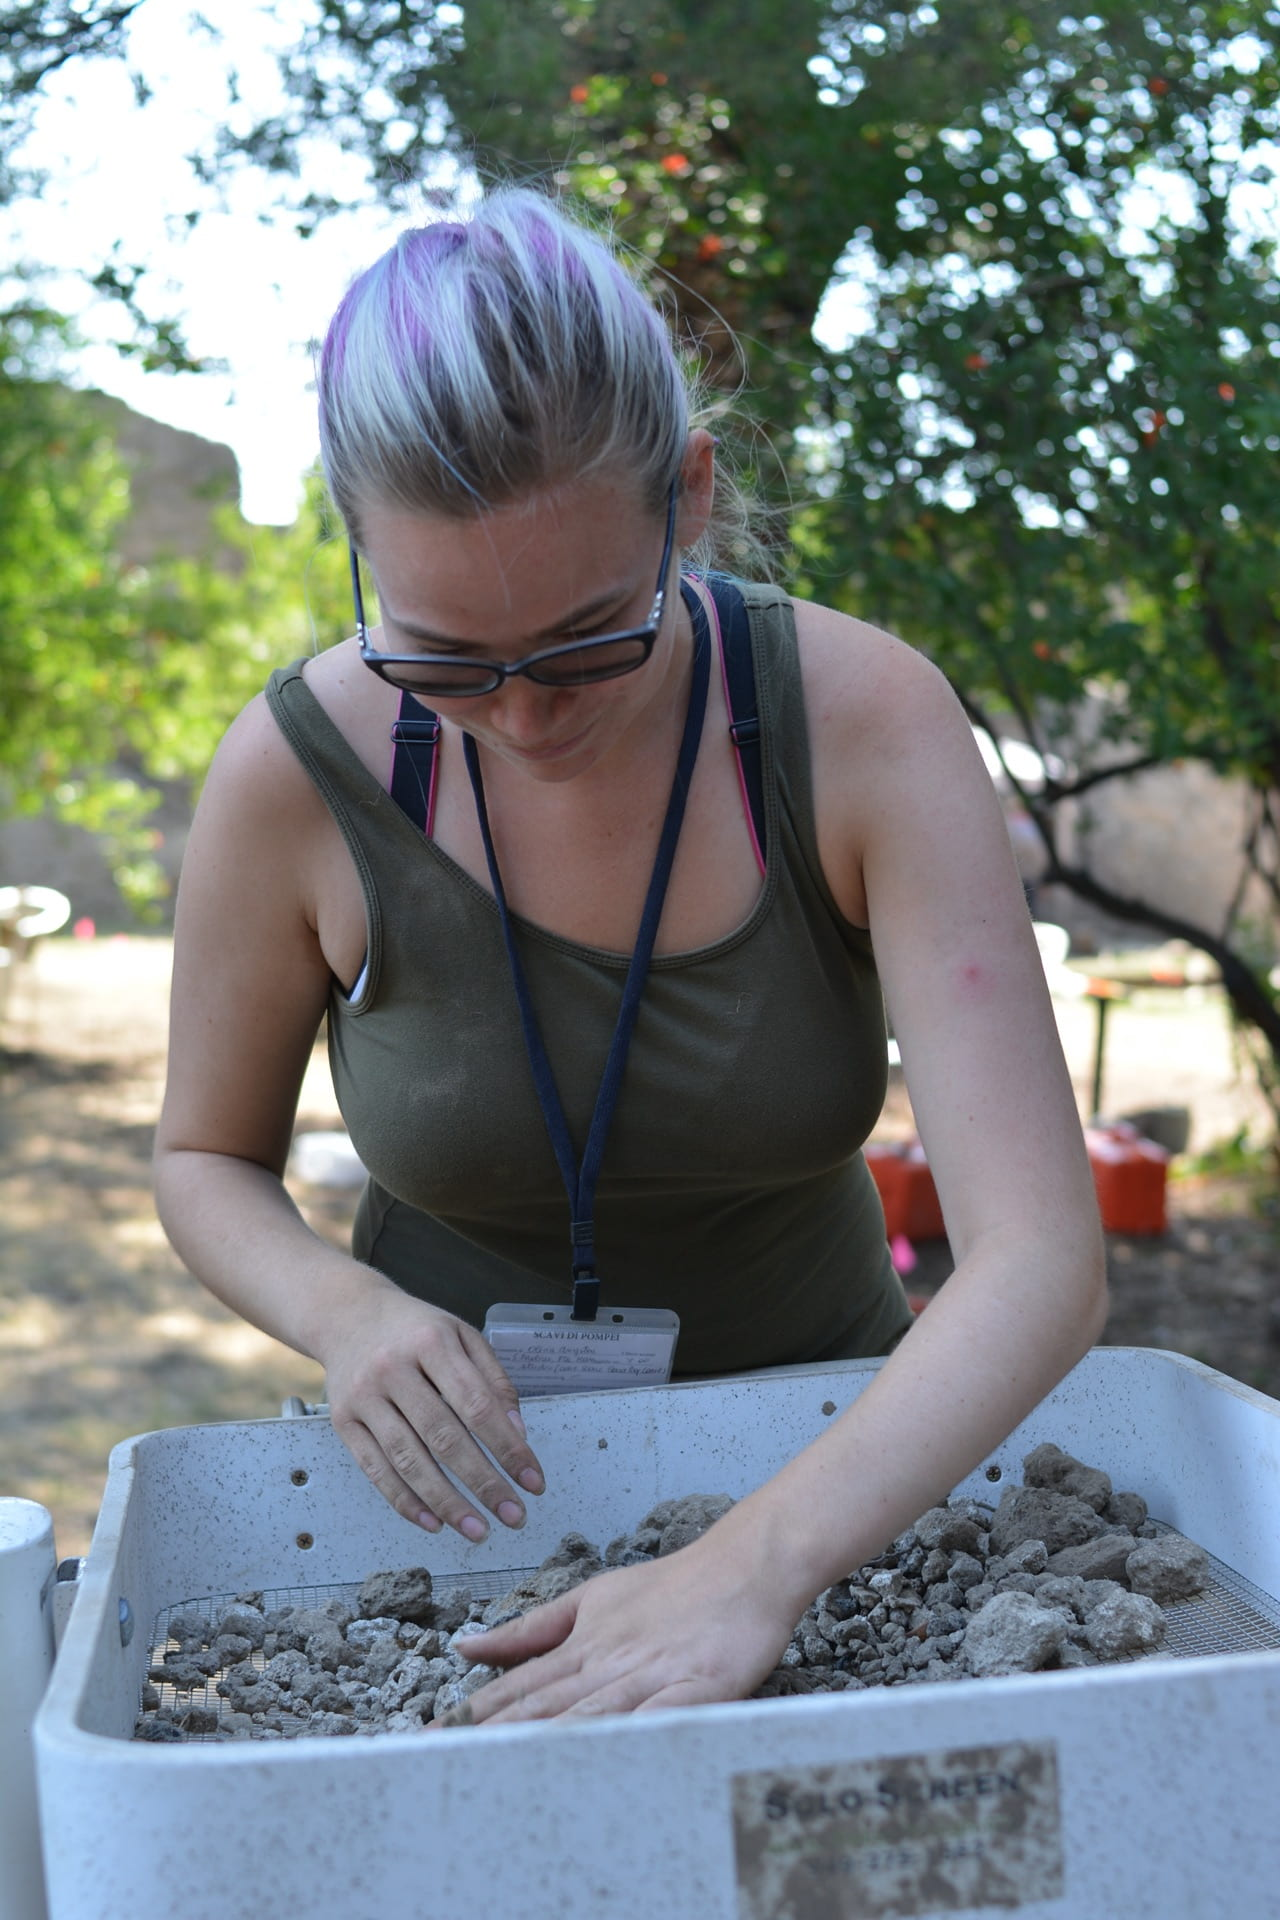 Examining the sifting screen for finds, 2019